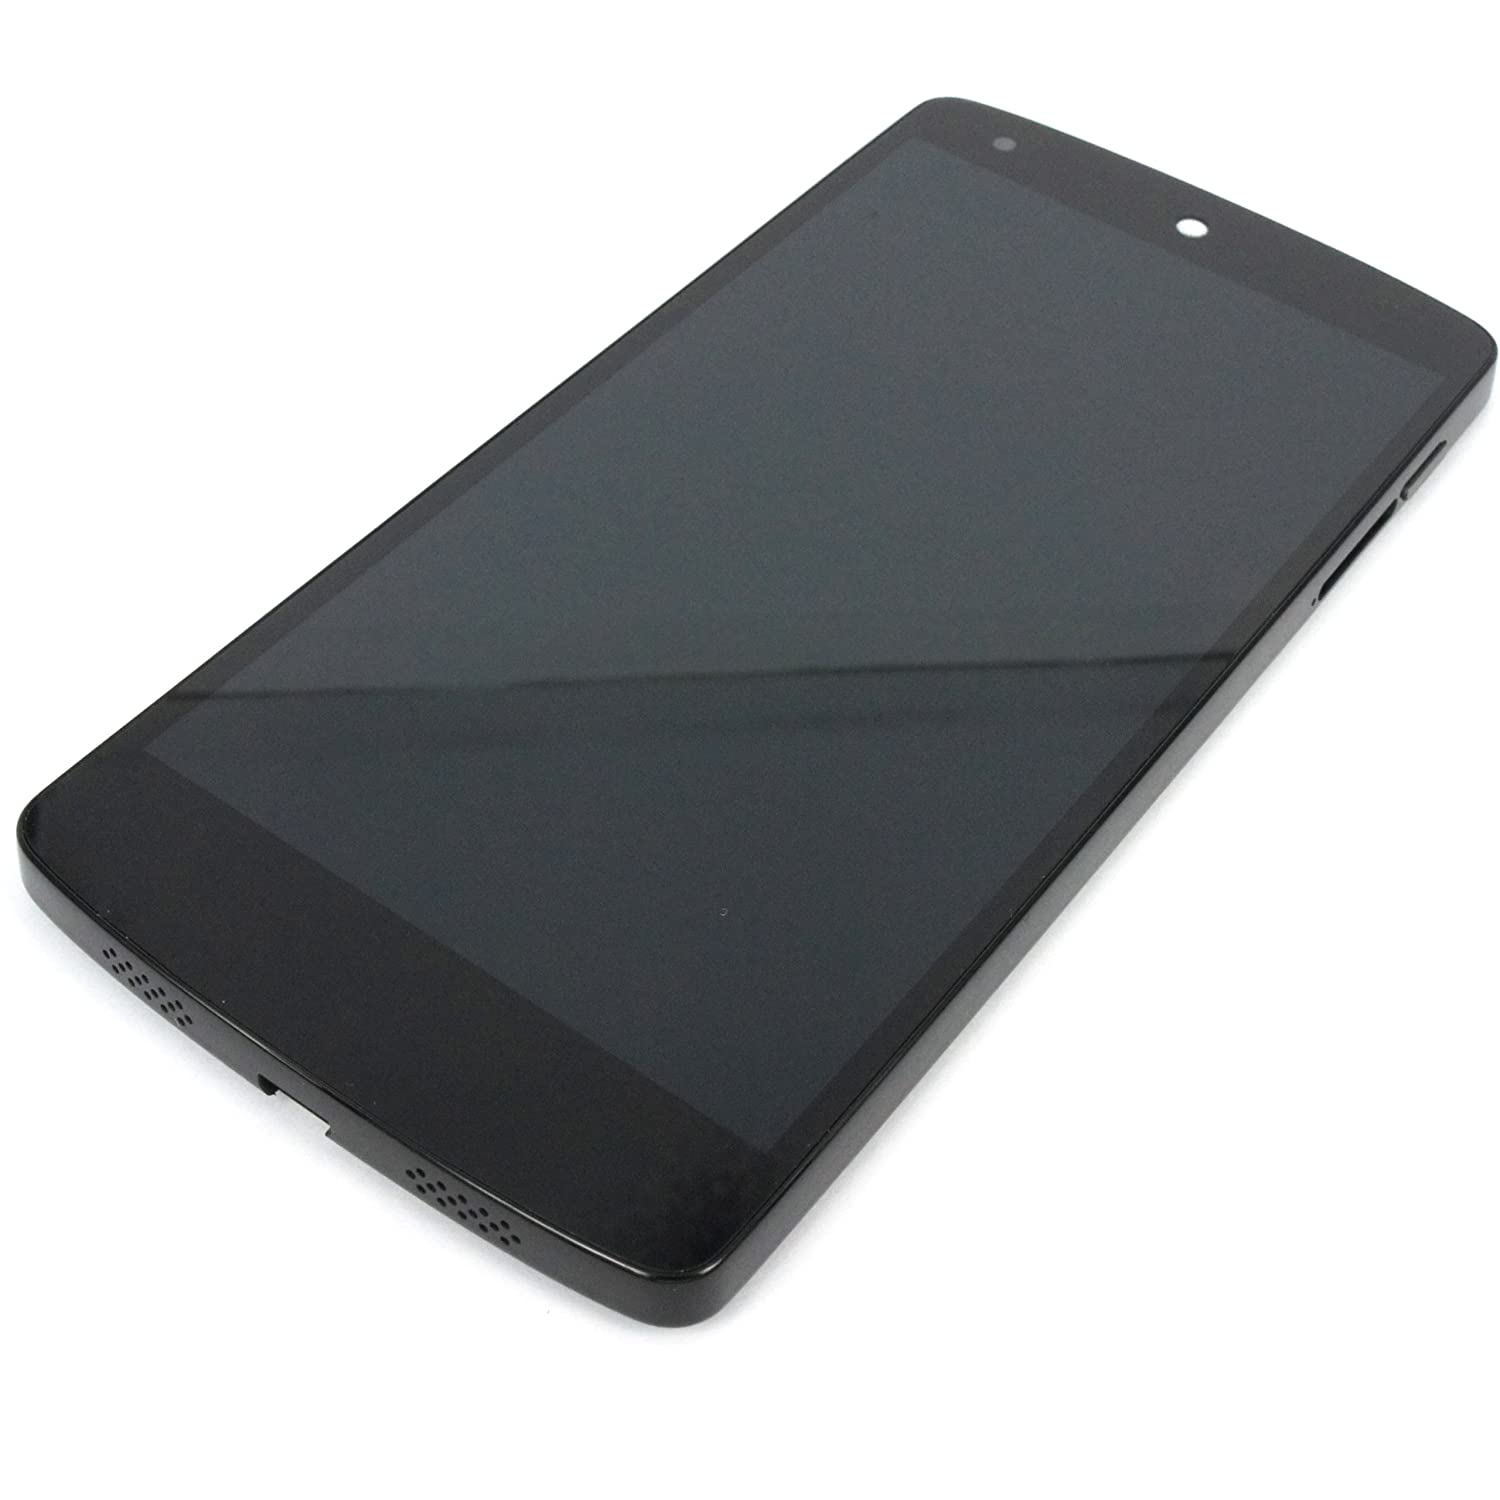 hot sale 2017 Generic Full Lcd Display Screen Touch Digitizer Glass Compatible For LG Google Nexus 5 D820 D821 w/ Deck